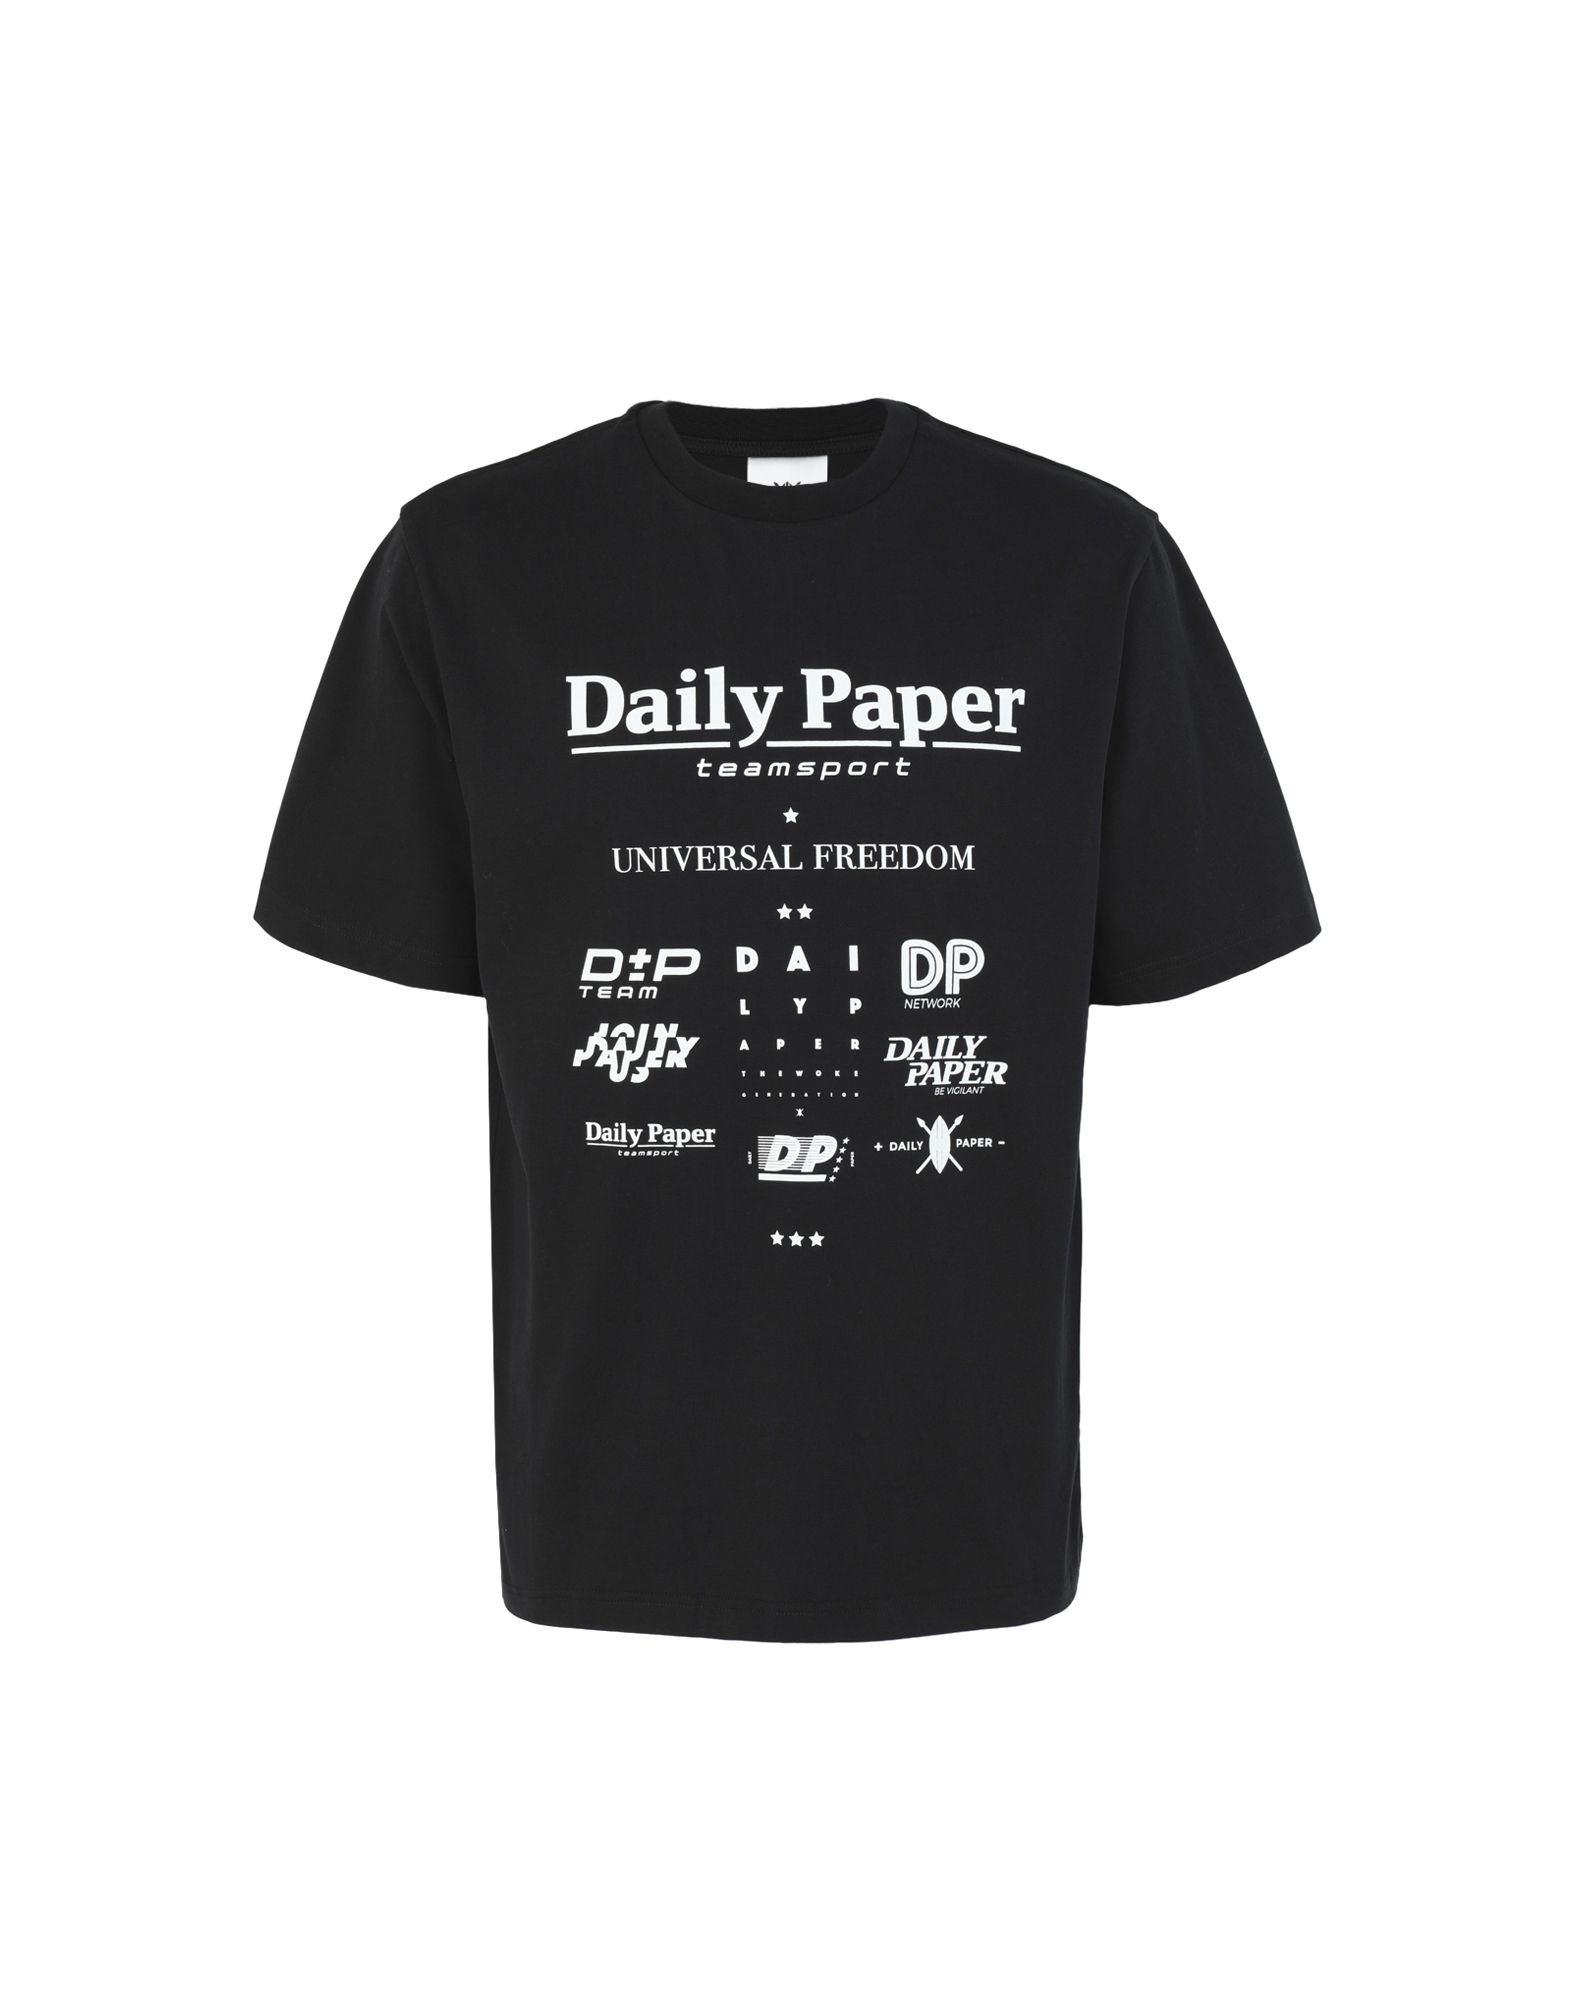 DAILY PAPER T-Shirts in Black